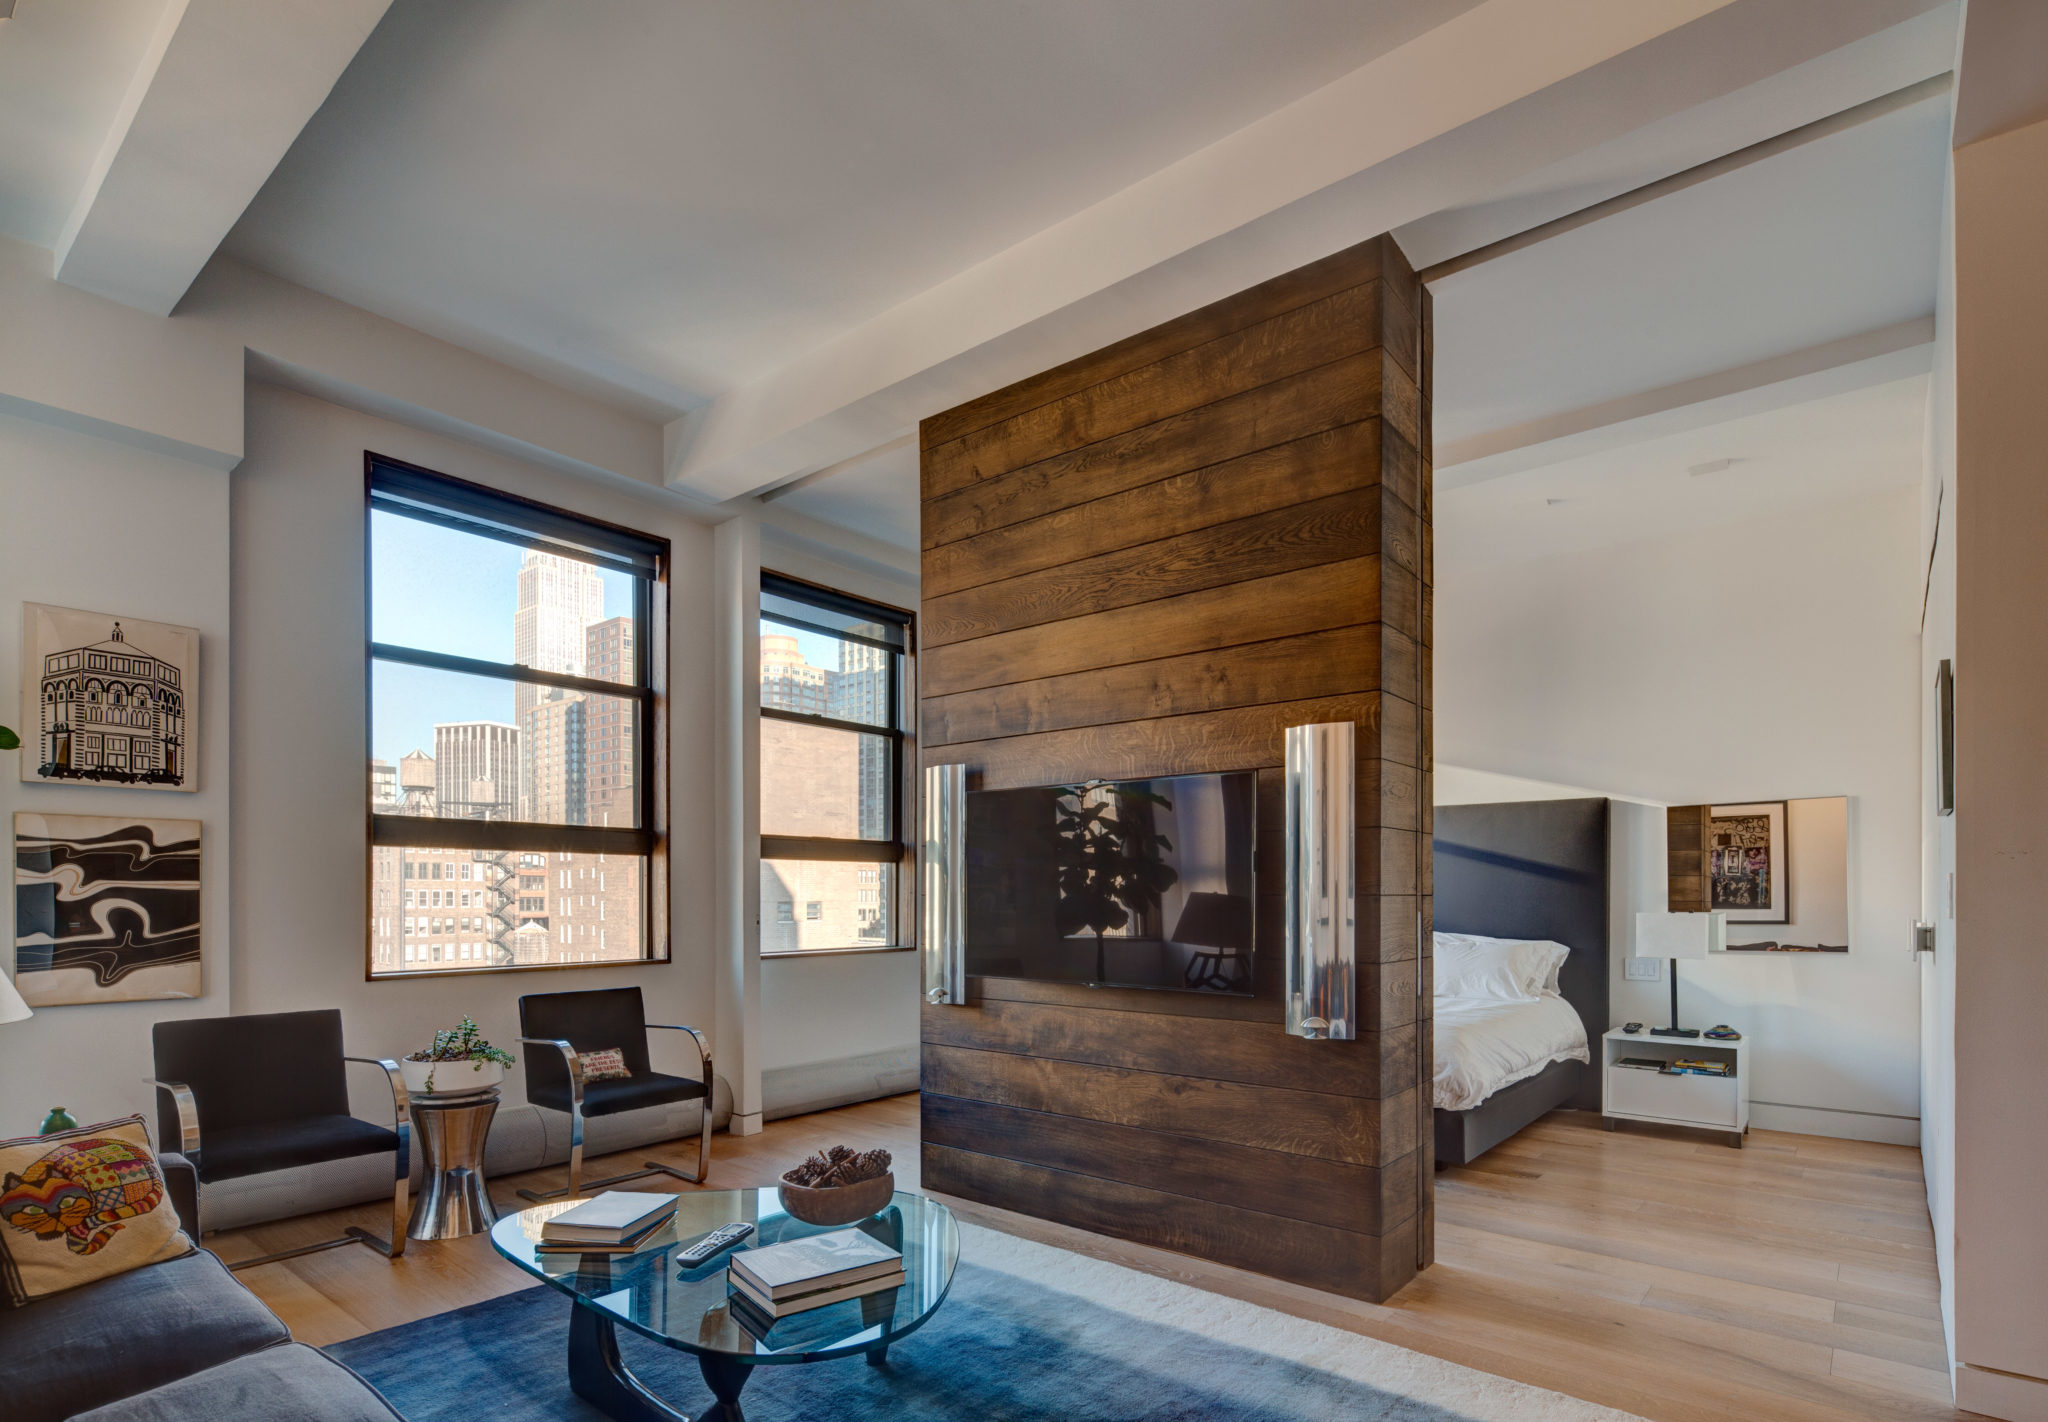 architecture - renovation - design - interior design - danny forster - chelsea mews - 148 west 23rd street - new york